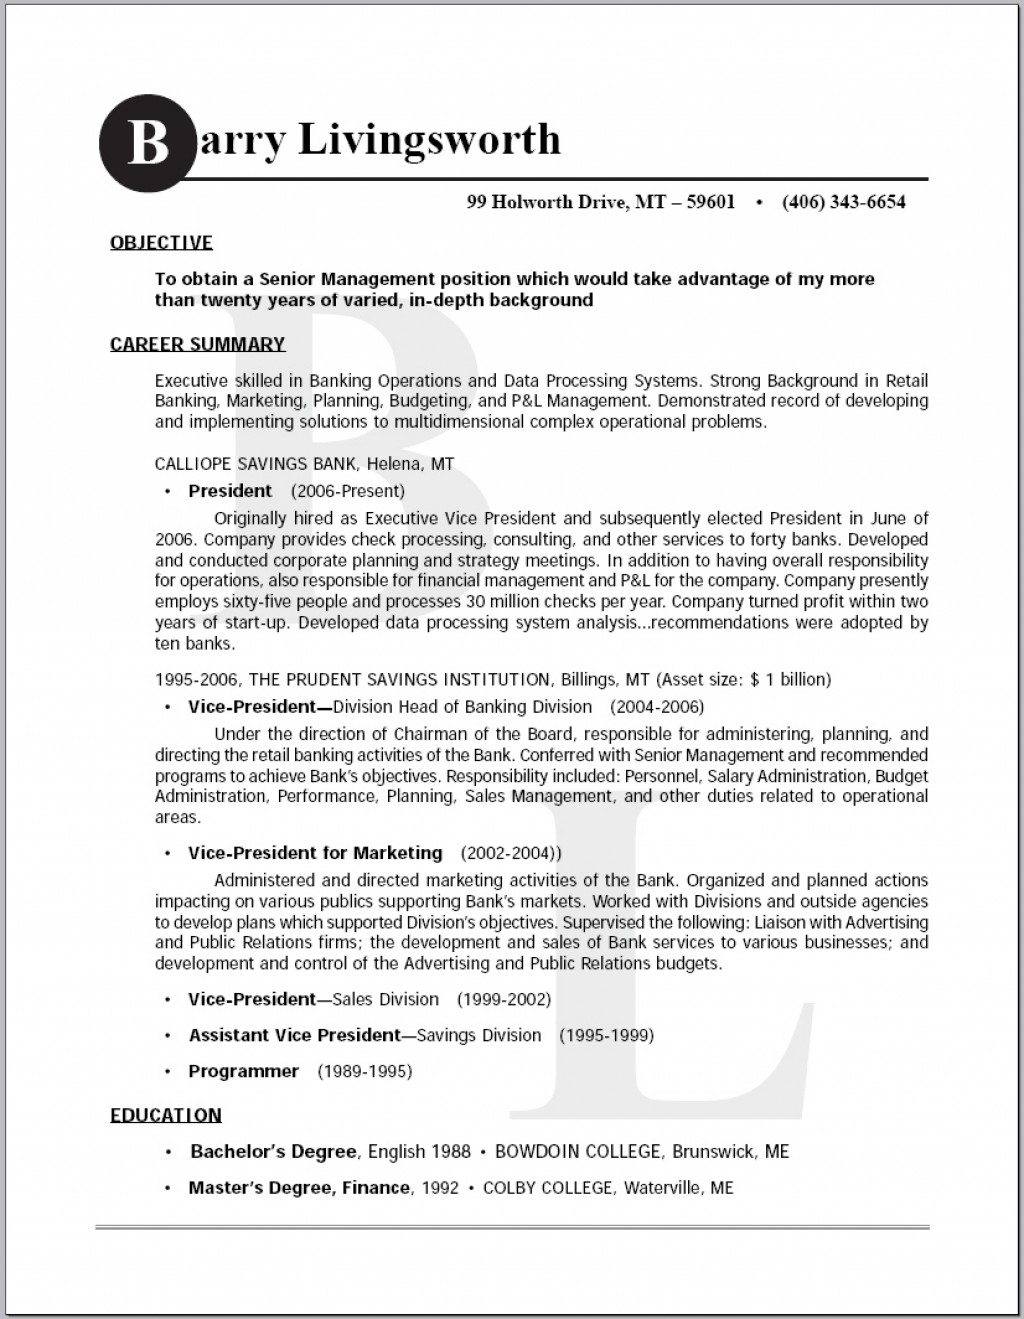 resume writing how to make your resume stand out